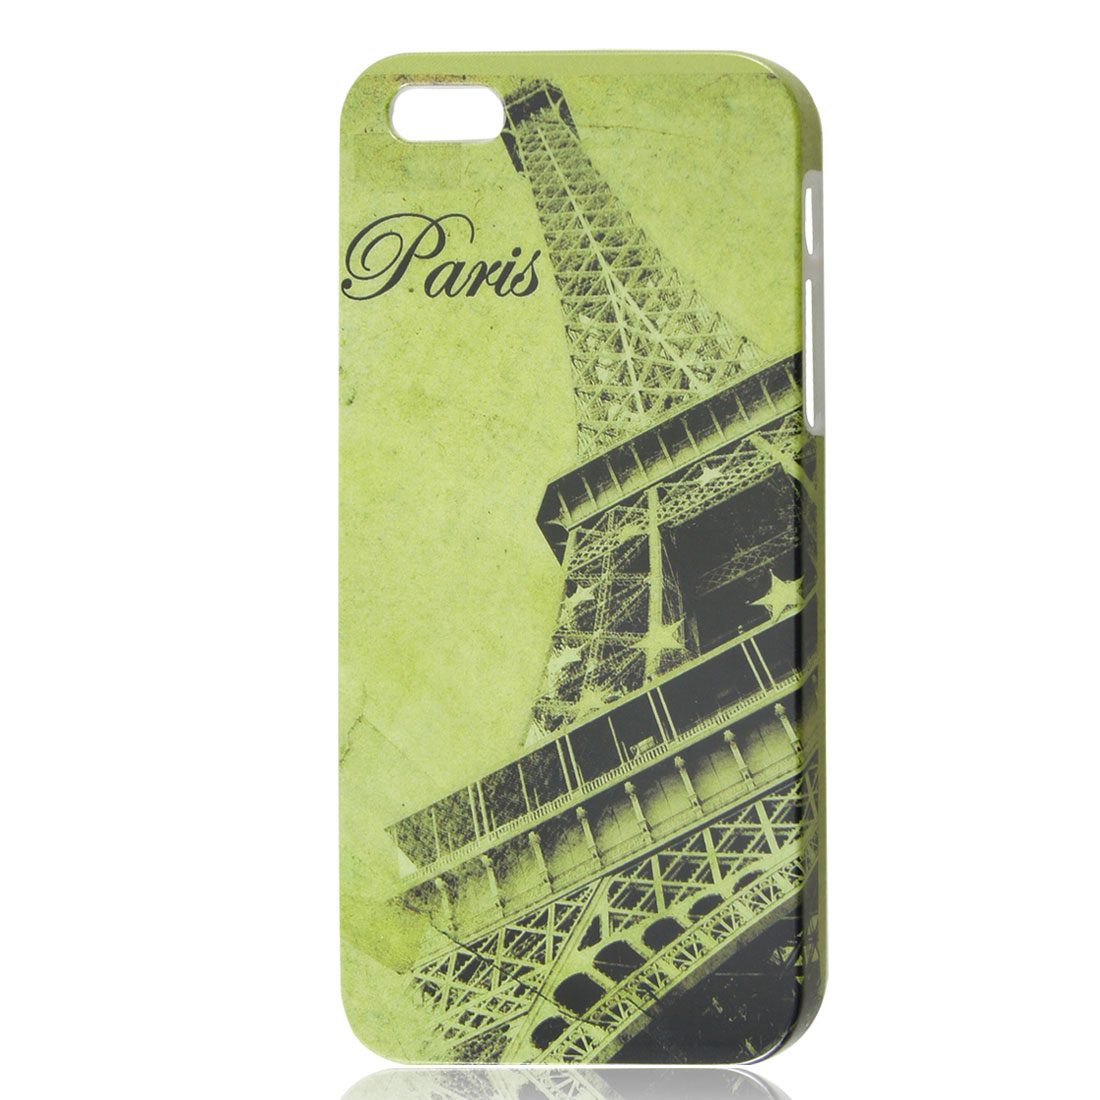 Eiffel Tower Retro Style Pale Green IMD Hard Back Case Cover for iPhone 5 5G